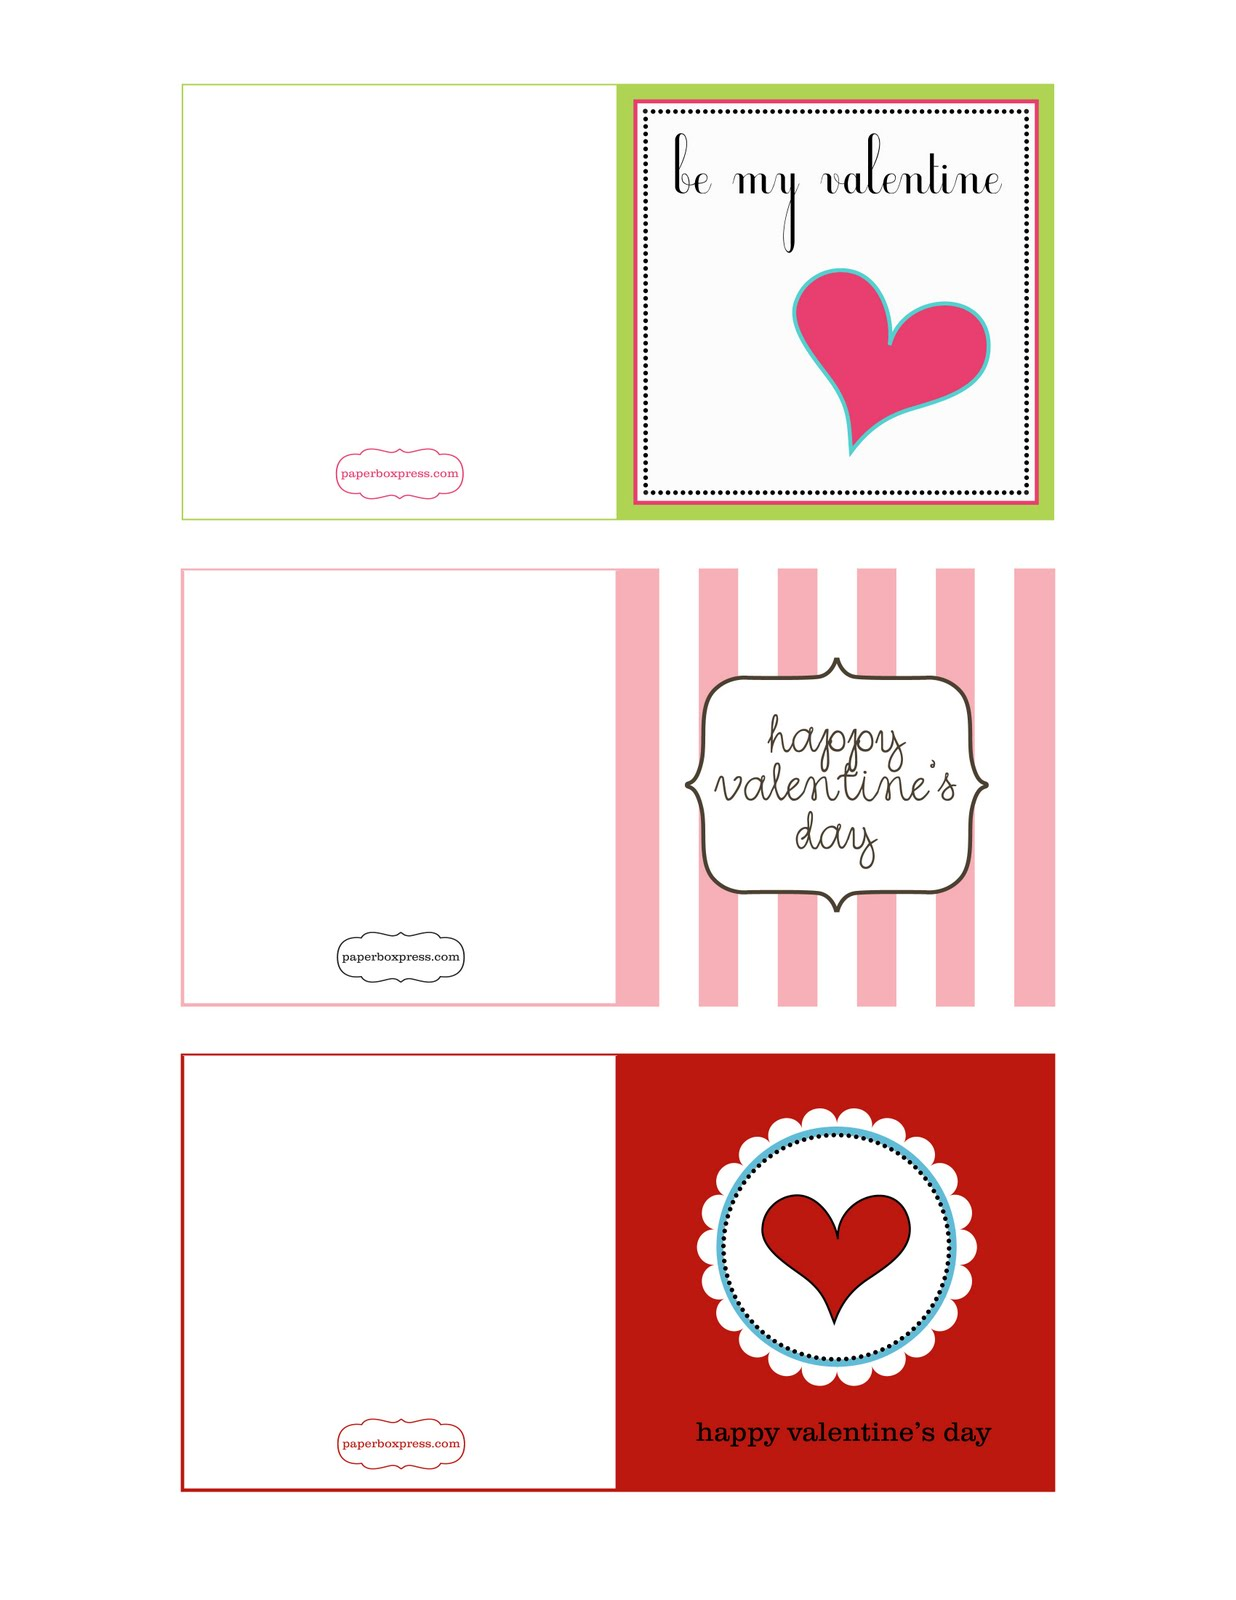 Paperbox Press Parties Free Valentine S Day Printables From Paperbox Press